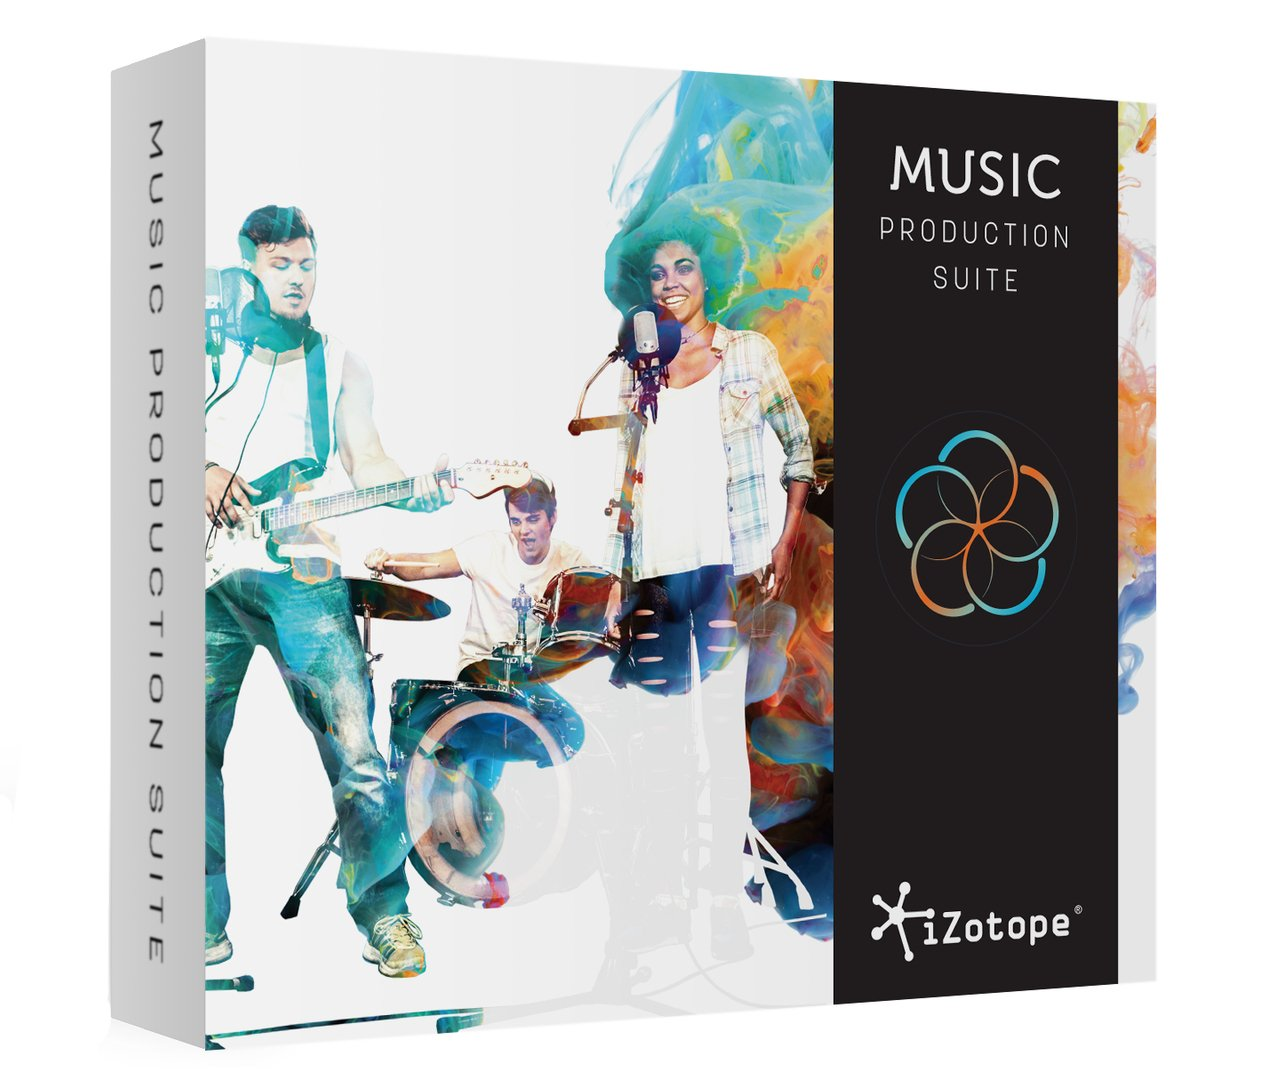 iZotope Music Production Suite Instant Rebate